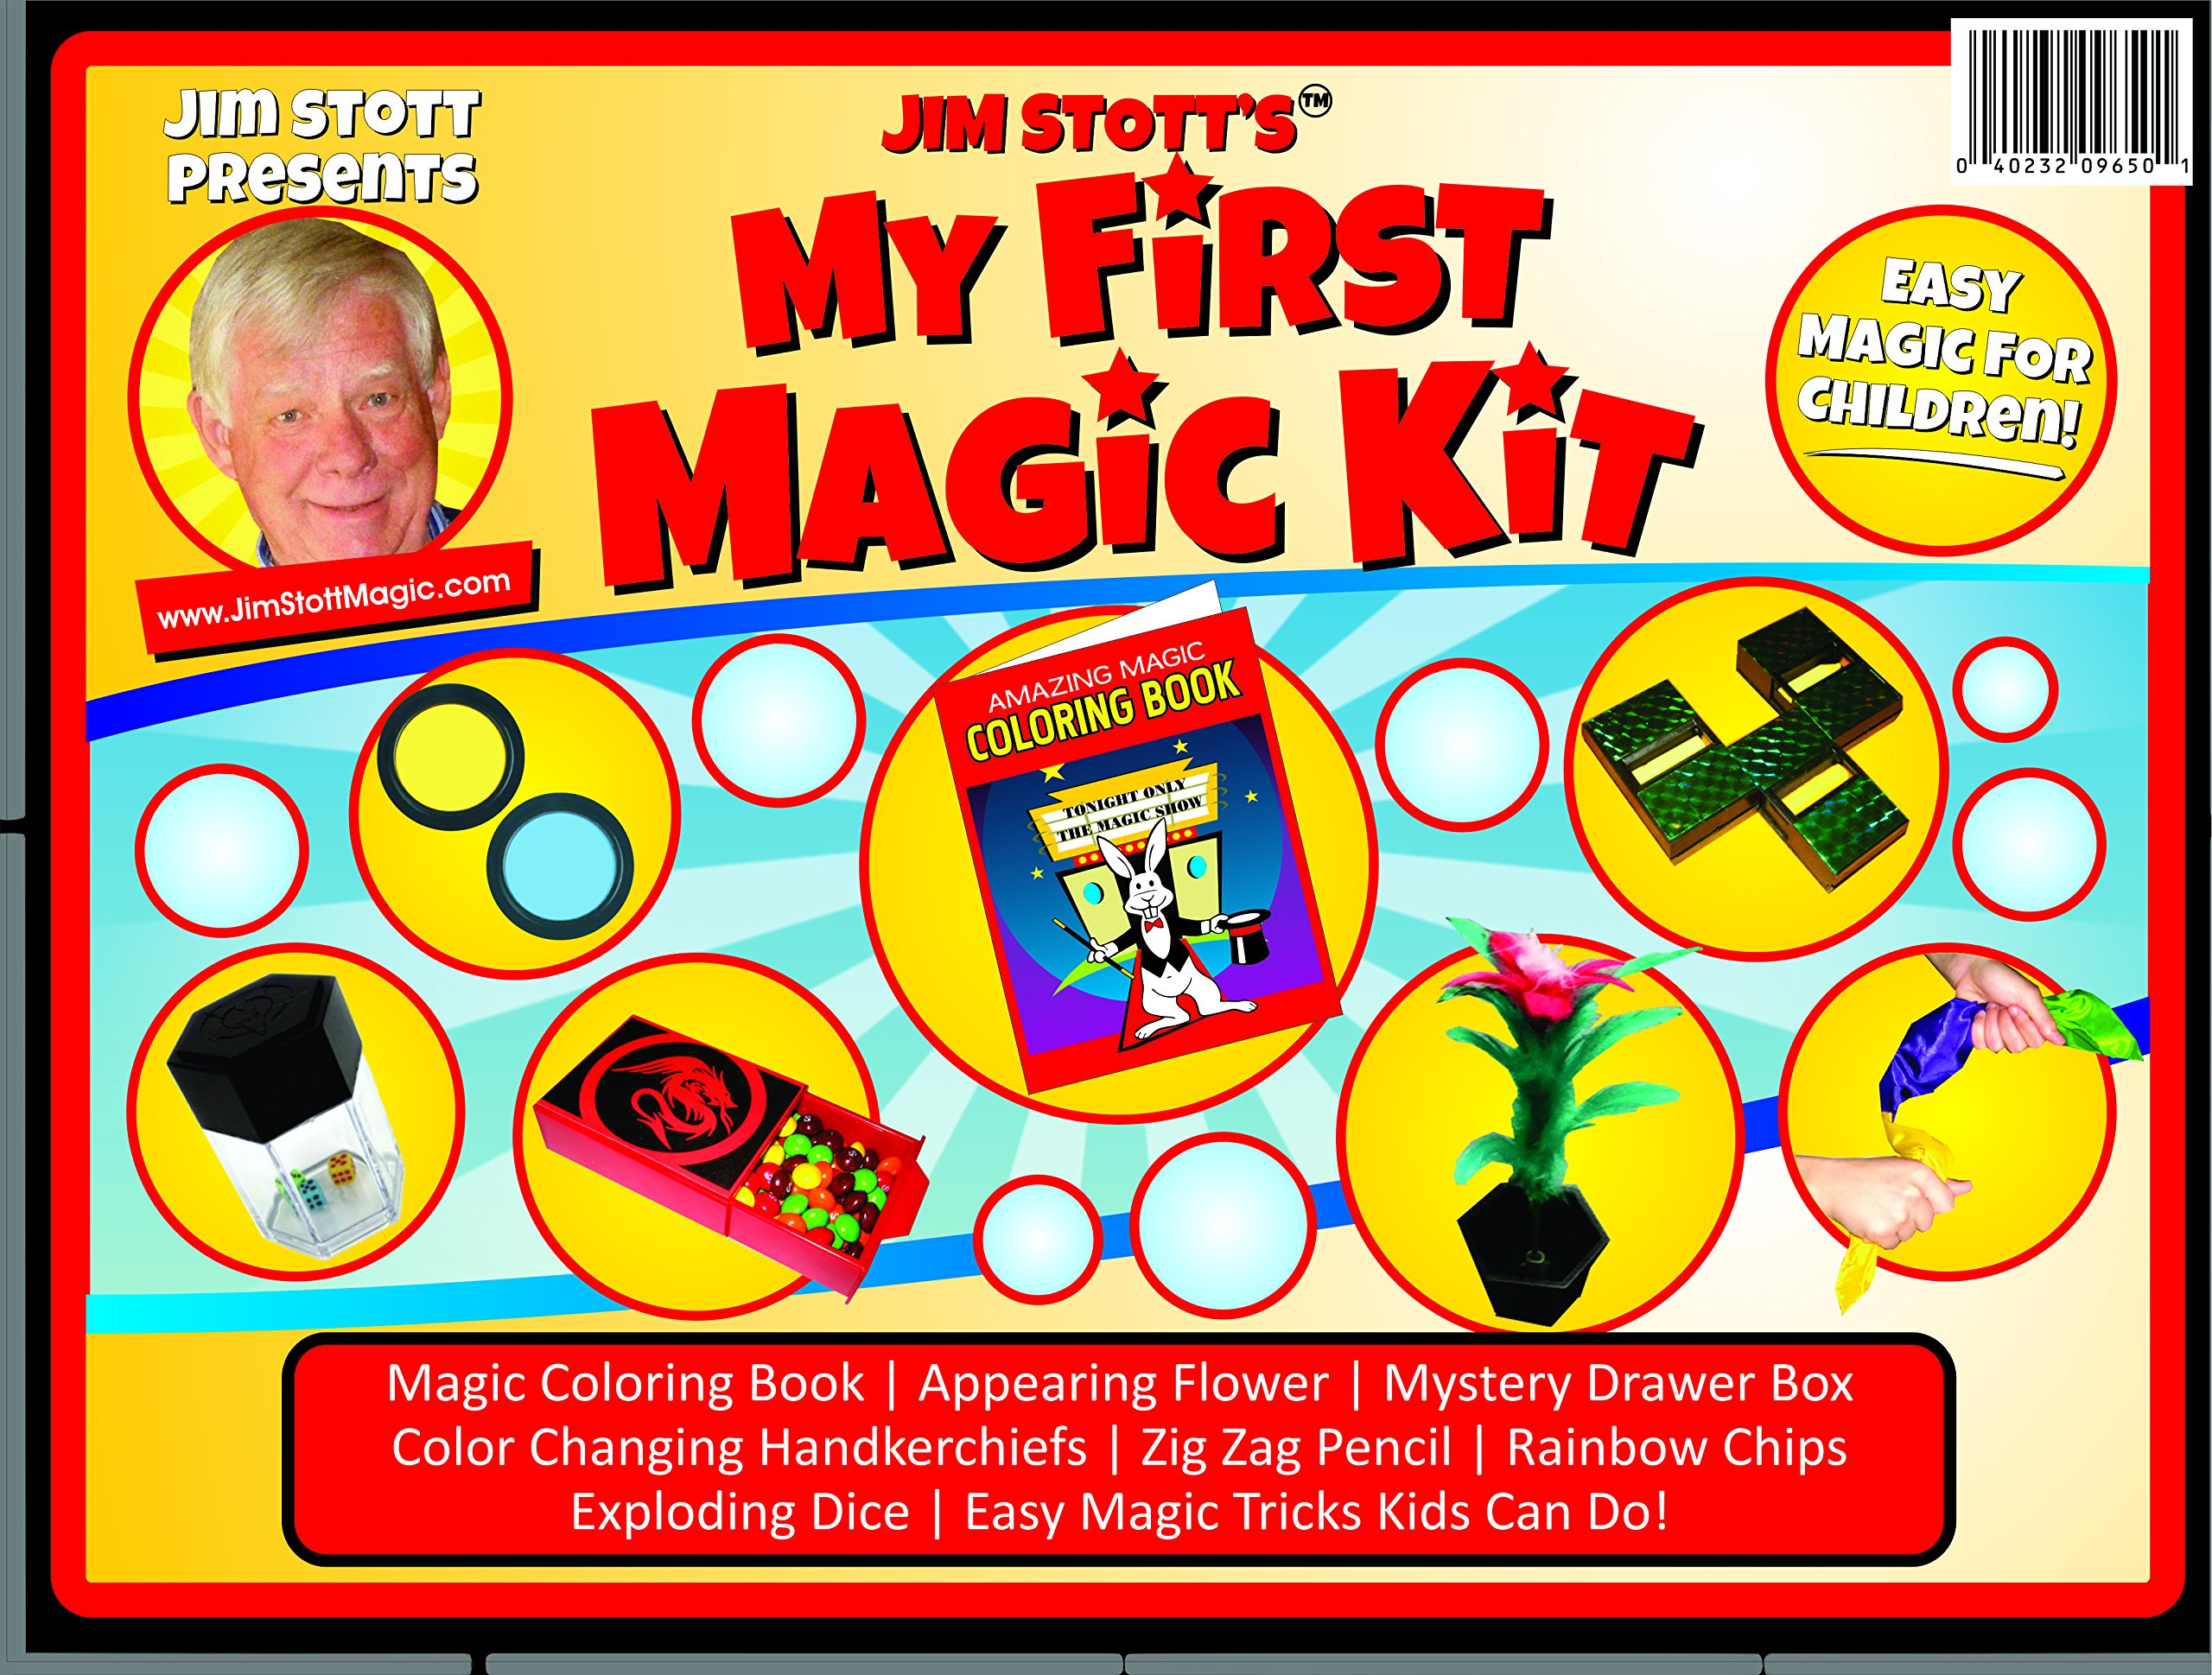 Jim Stott's 'My First Magic Kit' for Kids, Magic Tricks Set for Girls and Boys, Appearing Flower, Magic Coloring Book, Mystery Box, Color Changing Handkerchiefs, Exploding Dice, and More by Jim Stott Magic